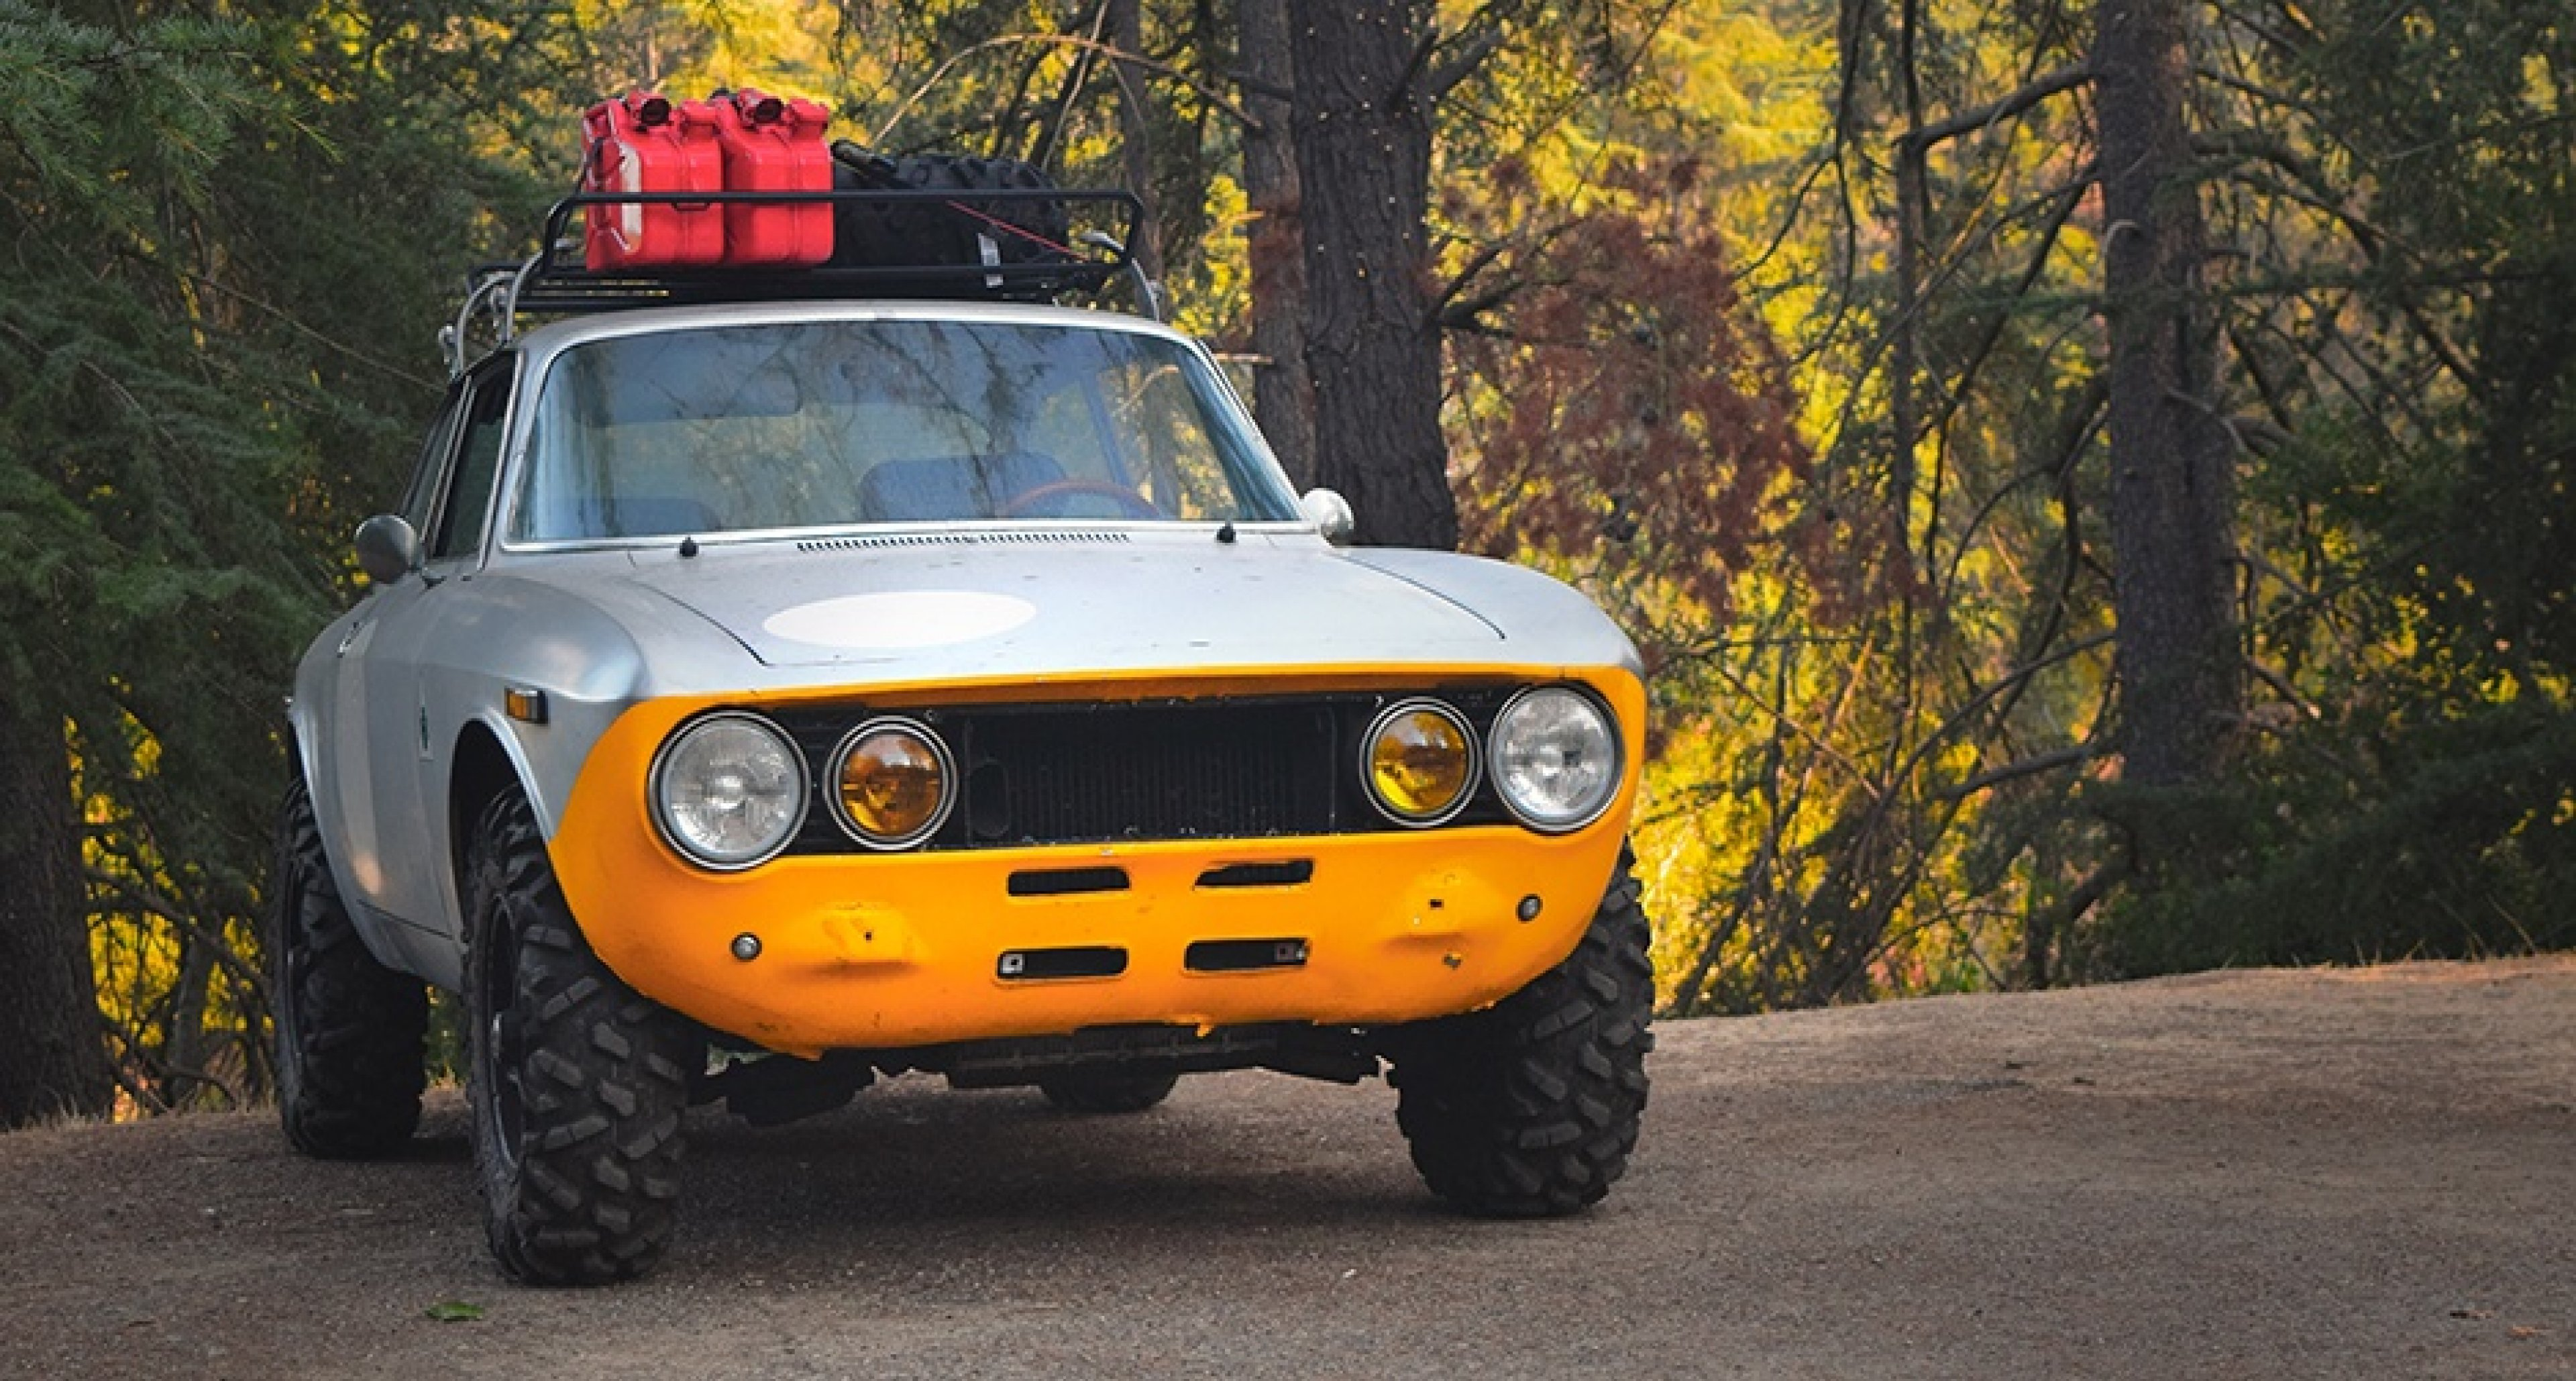 This Off Road Alfa Romeo Gtv Is Ready For Anything